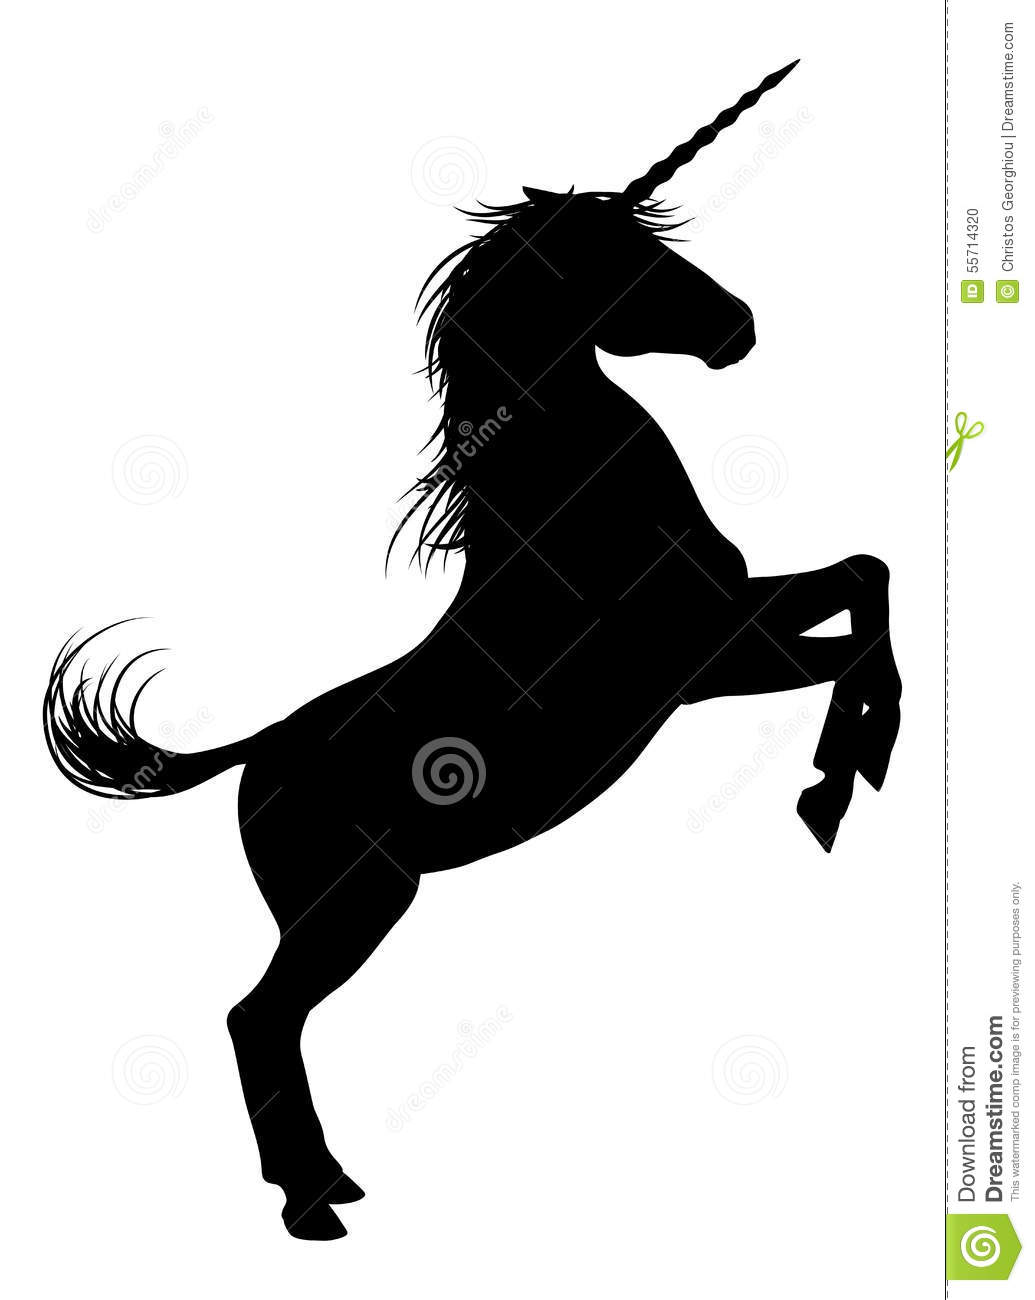 Unicorn mythical horse in silhouette rearing standing on hind legs.